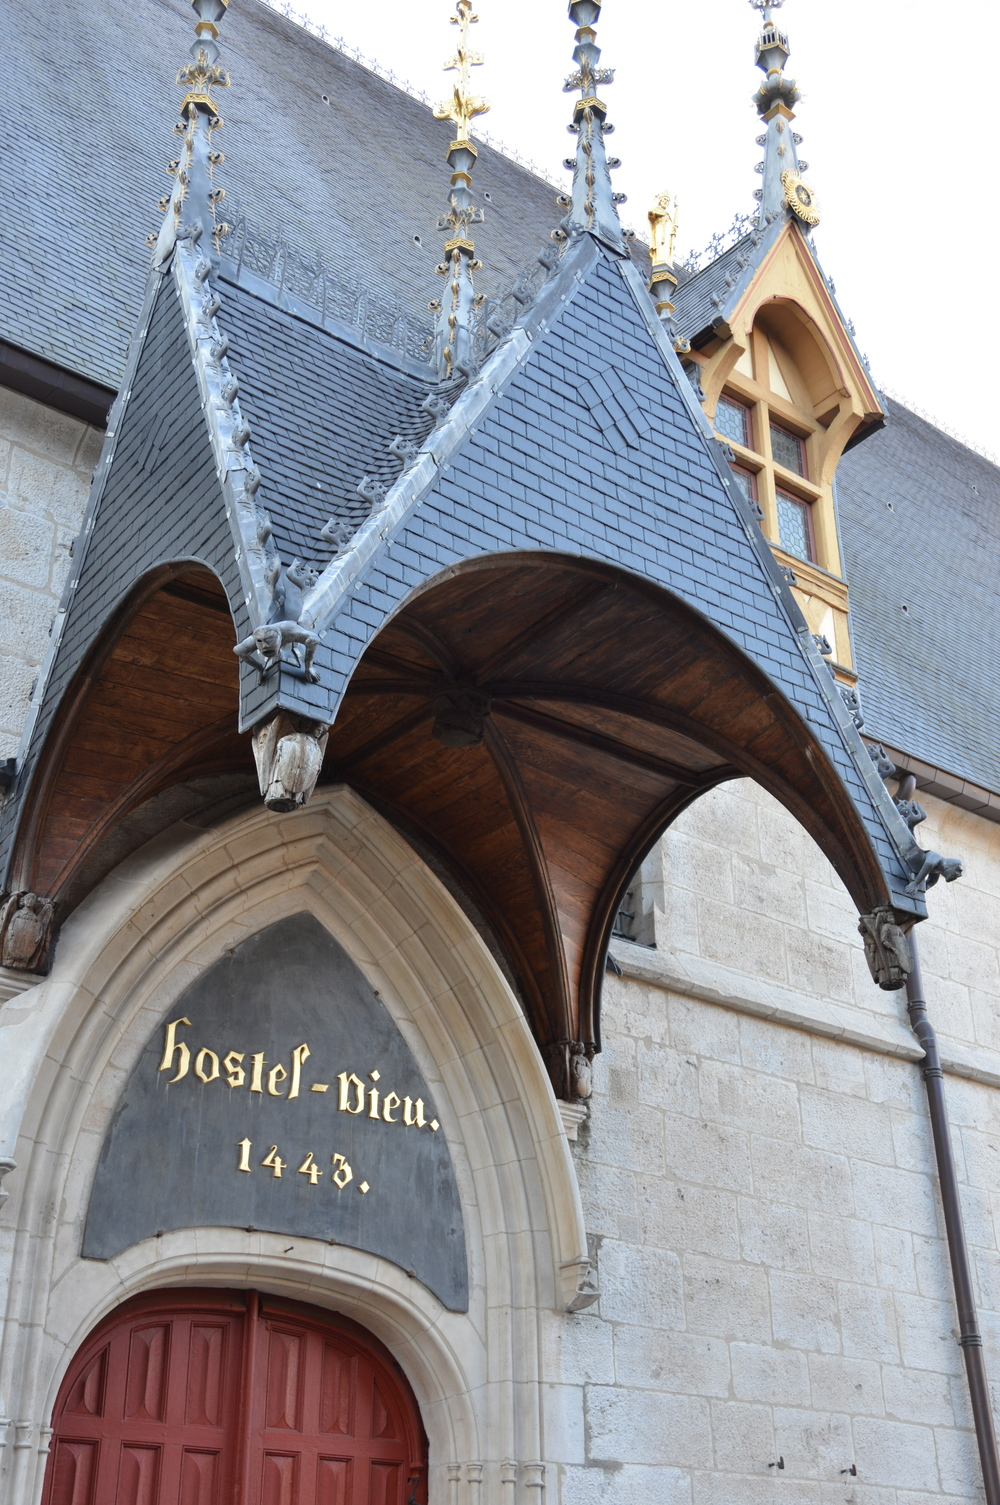 The Hospices de Beaune - the main tourist attraction in the centre of Beaune, Burgundy